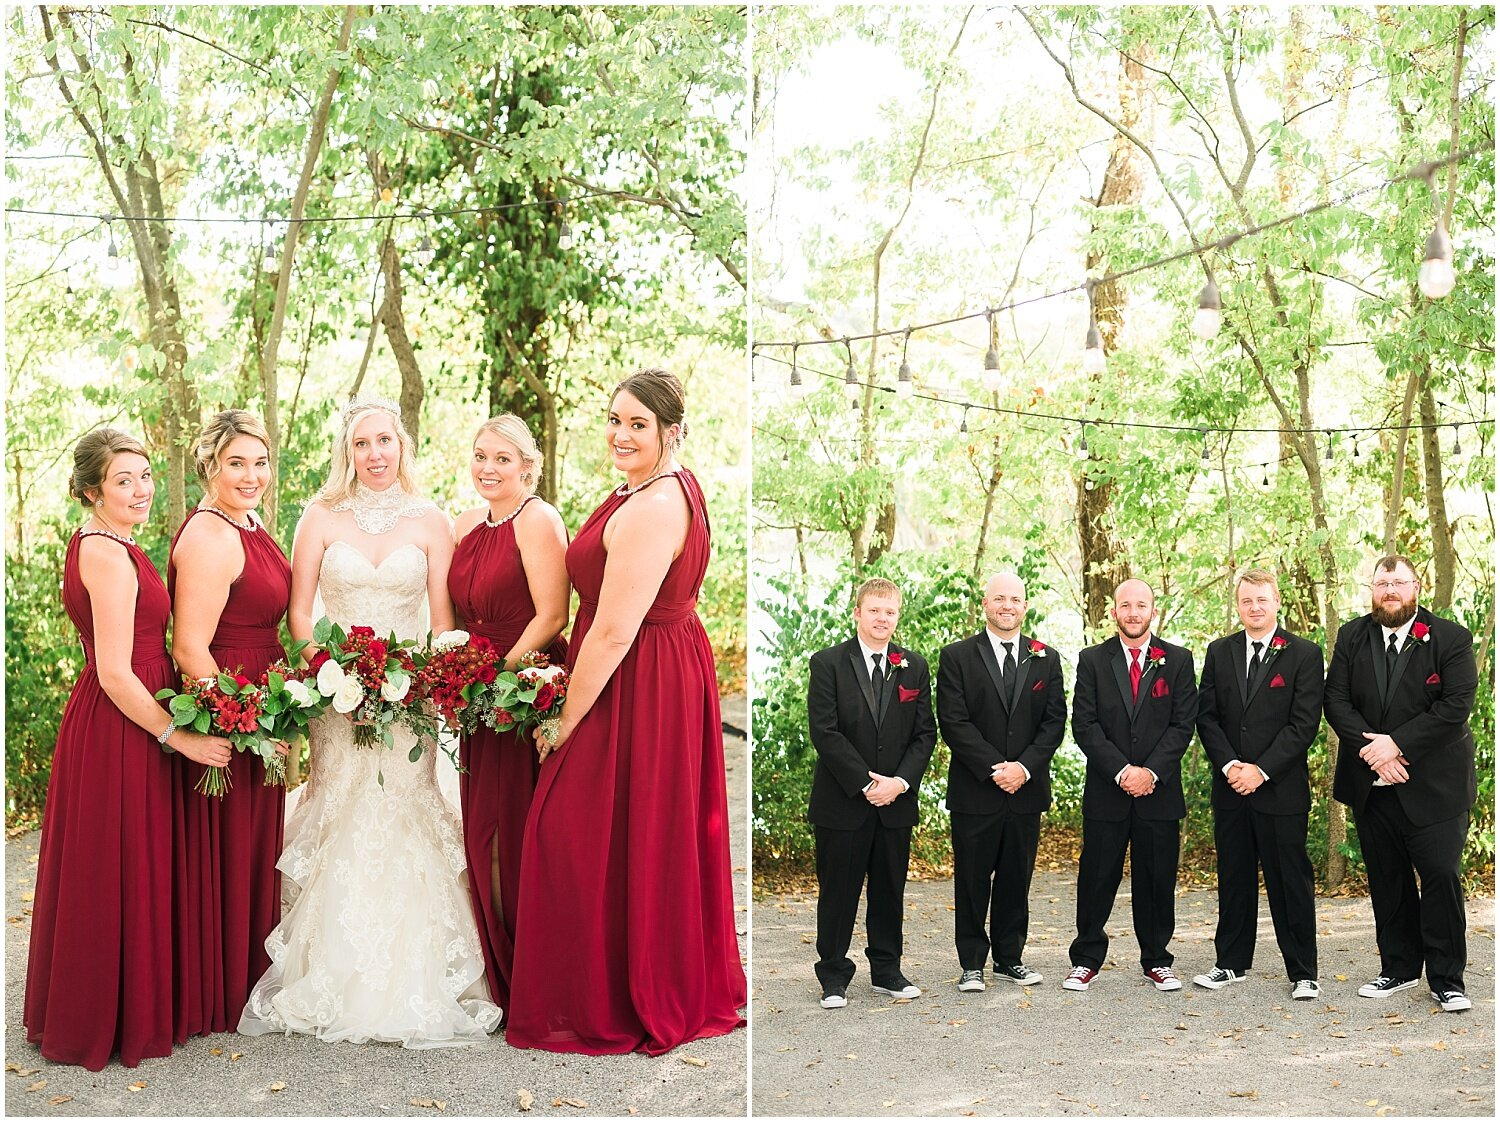 deep-red-bridesmaids-dresses